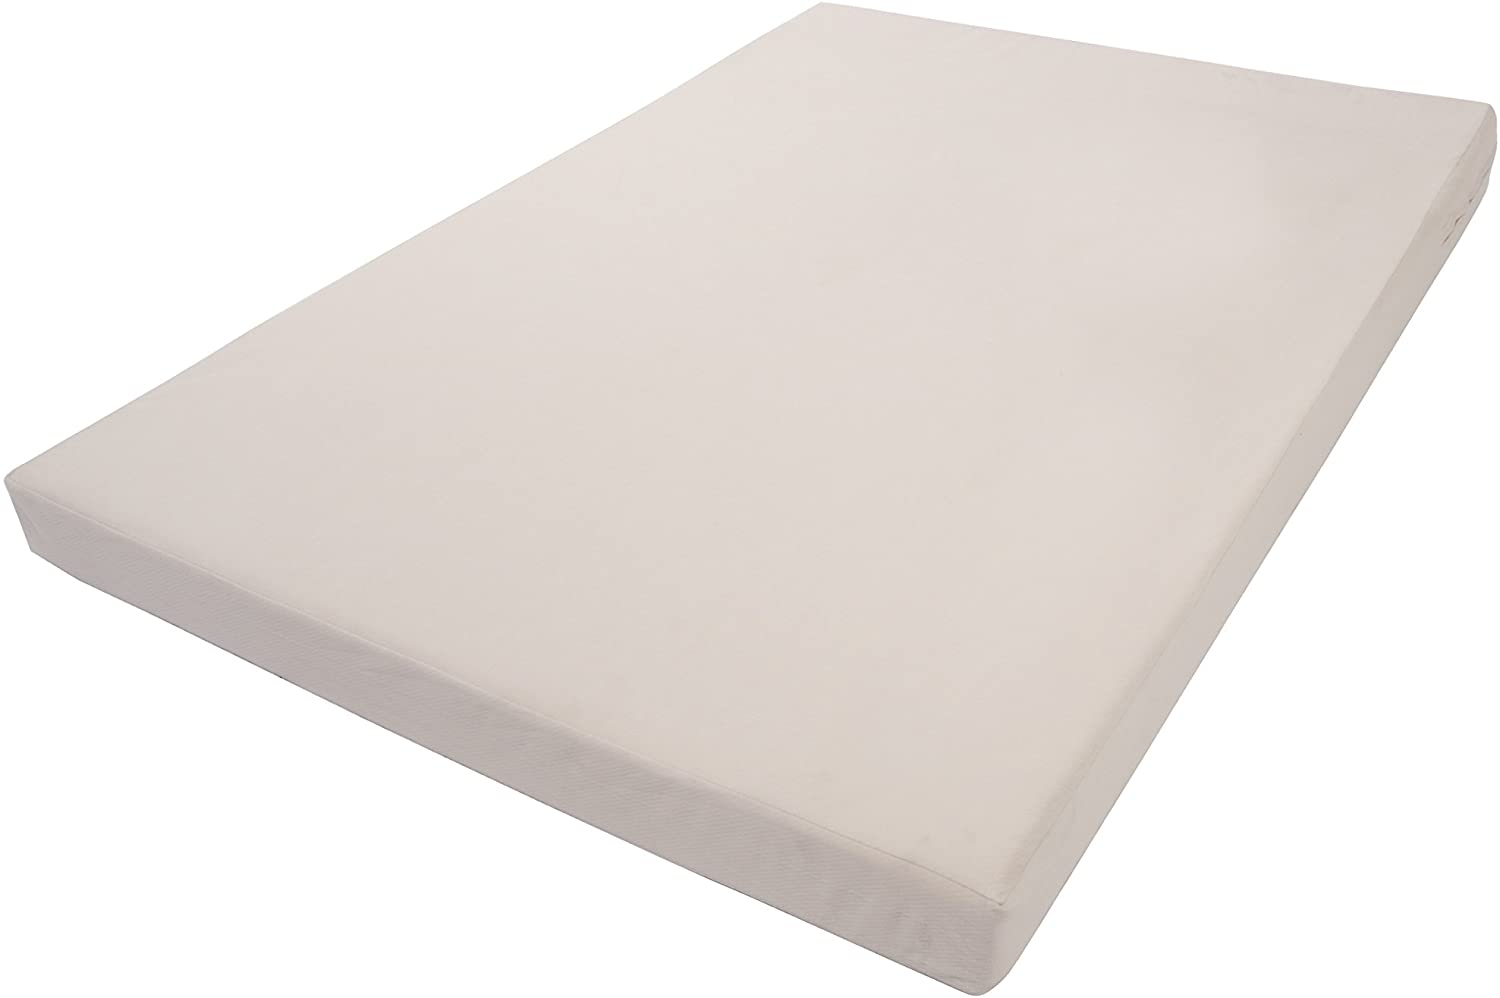 Innovex Home Products Titan Collection Memory Foam Mattress with Bed Bug Cover, 5/Twin, Pearl Bush